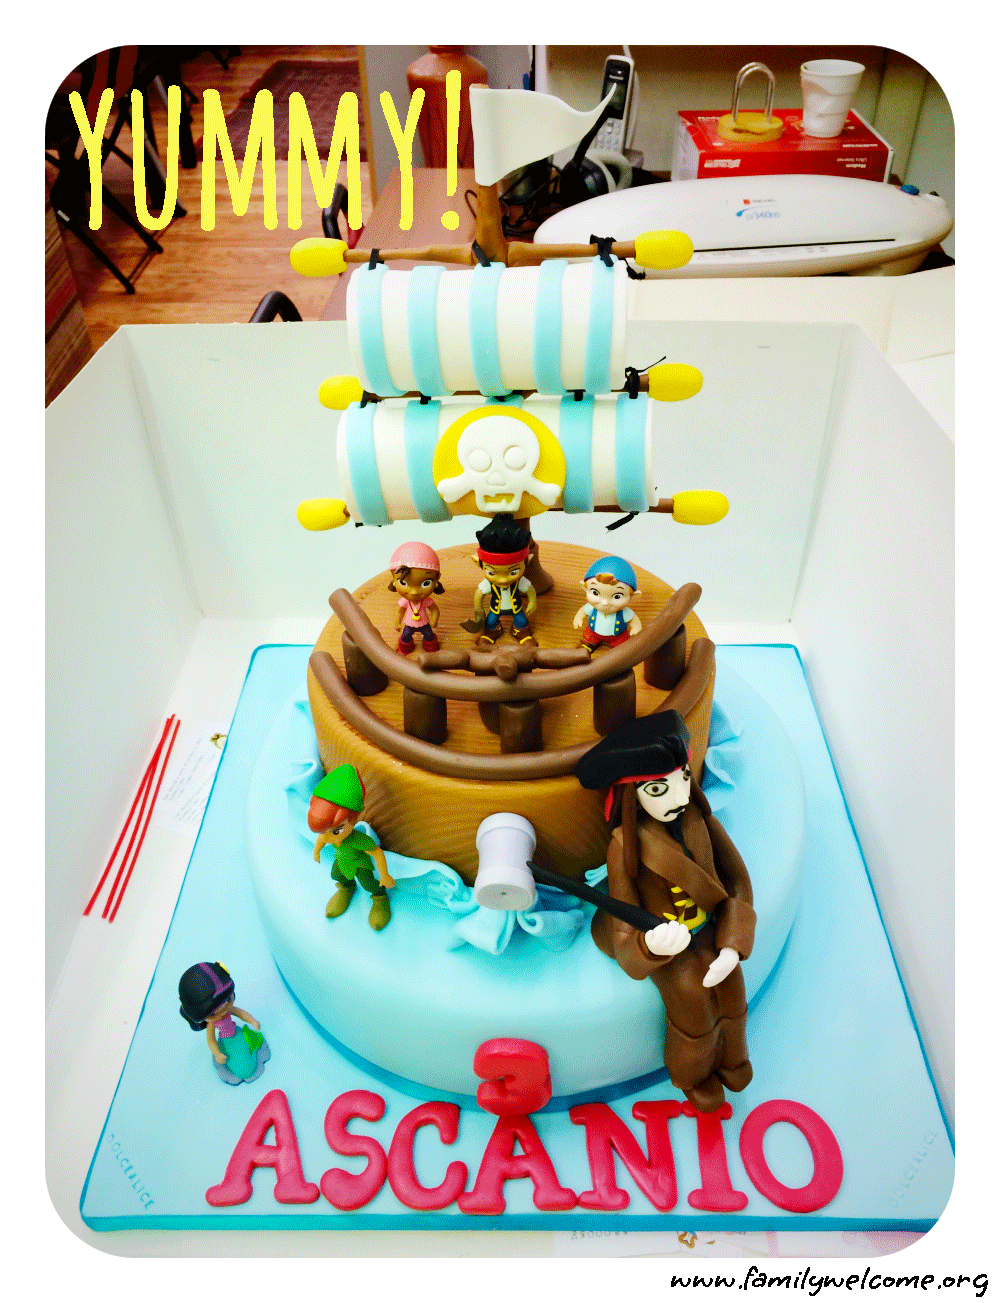 Cake Design Per Bambini Roma : Il Pirata Party per il mio baby boy - Family Welcome